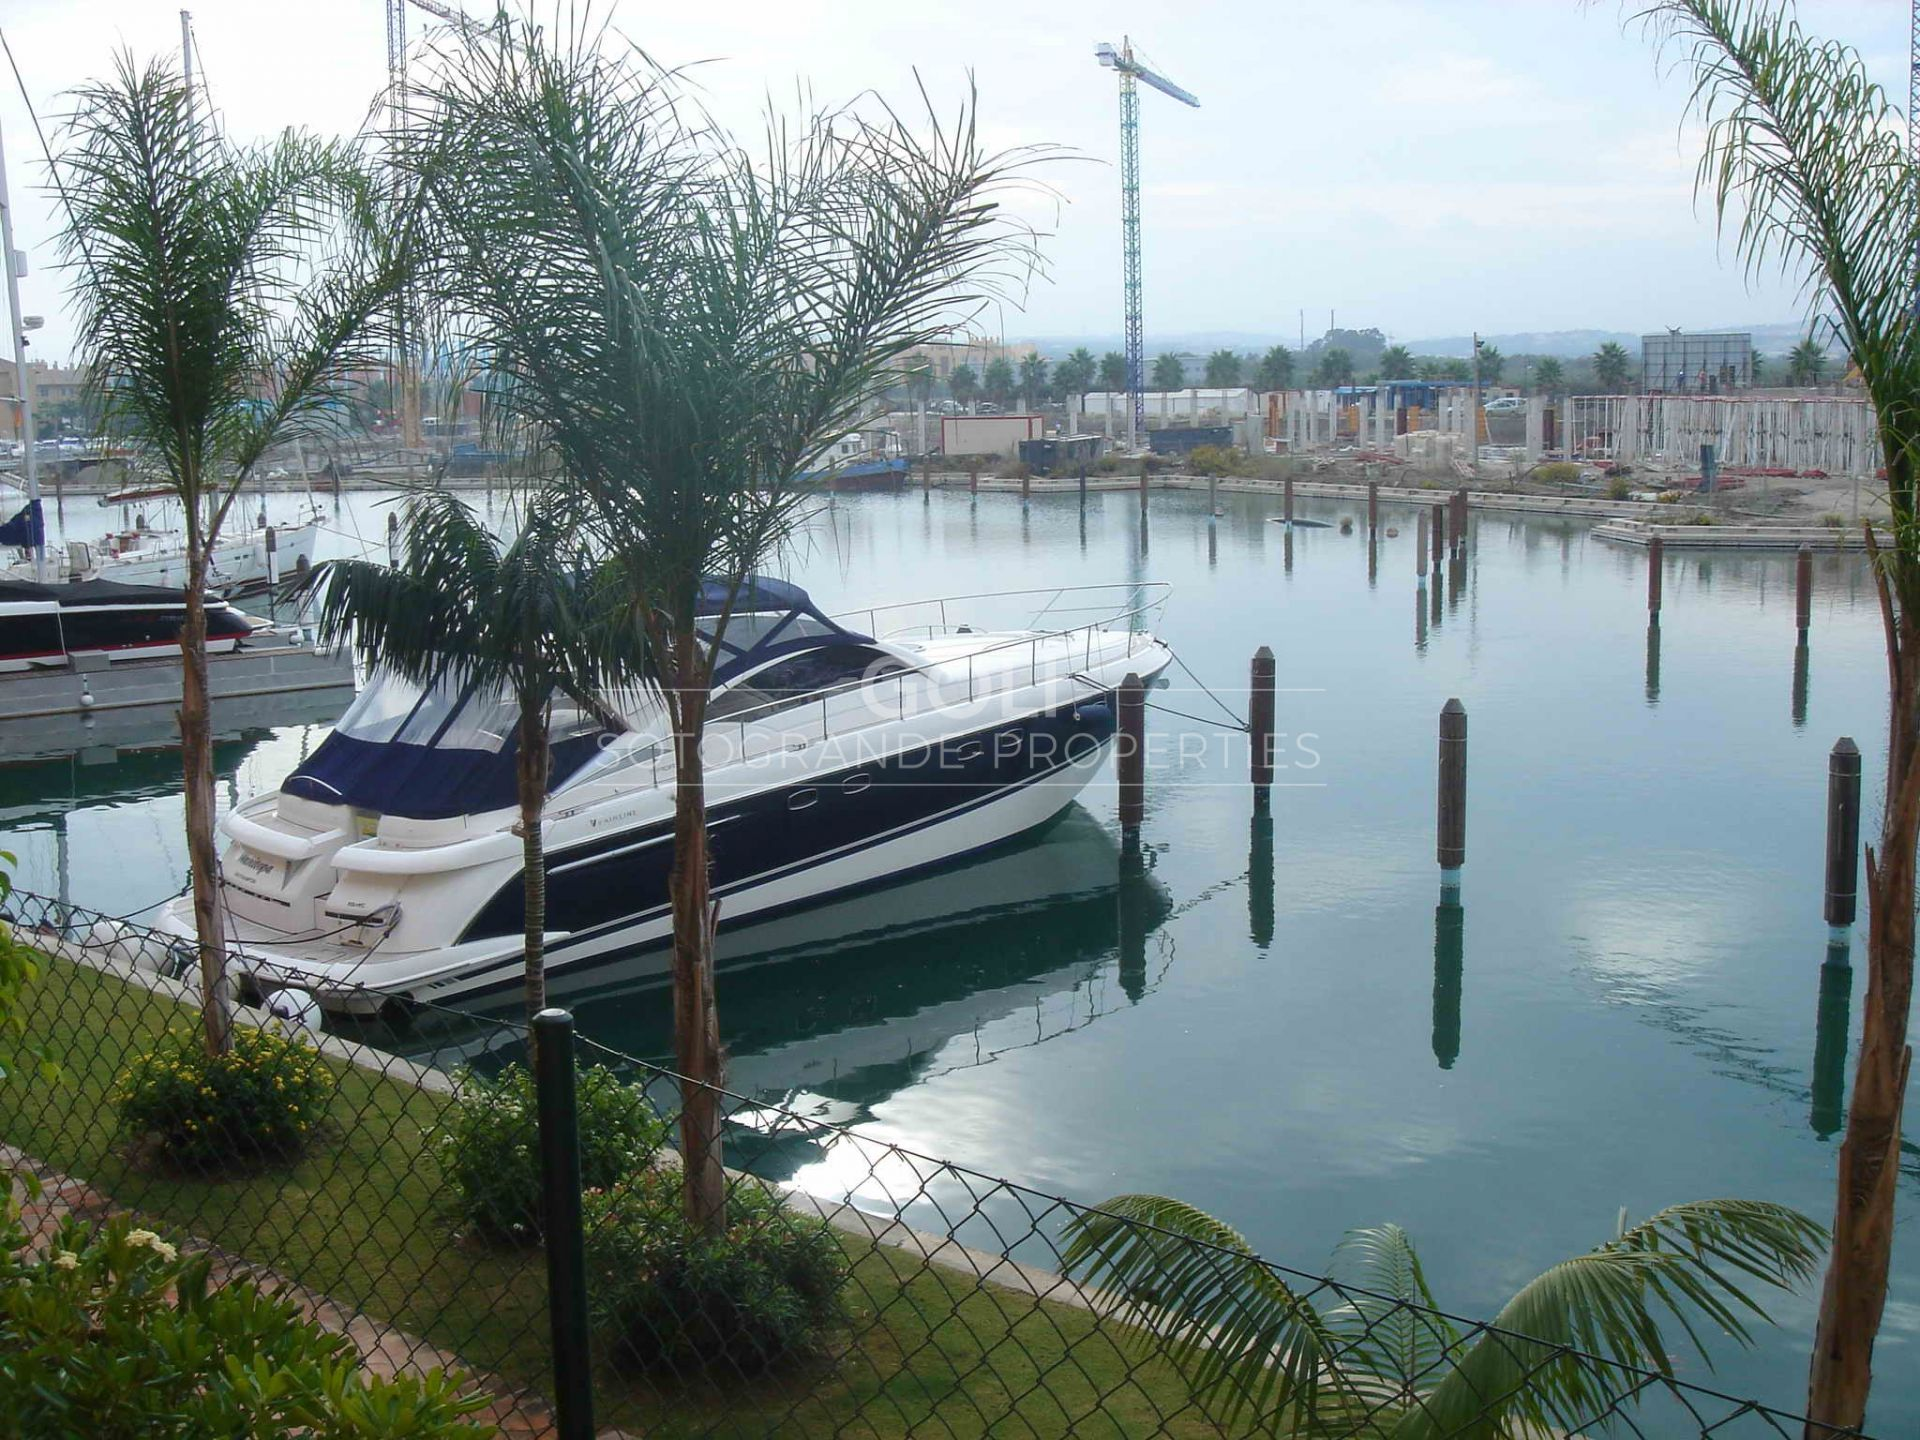 Apartment in Obispo with view of the Marina